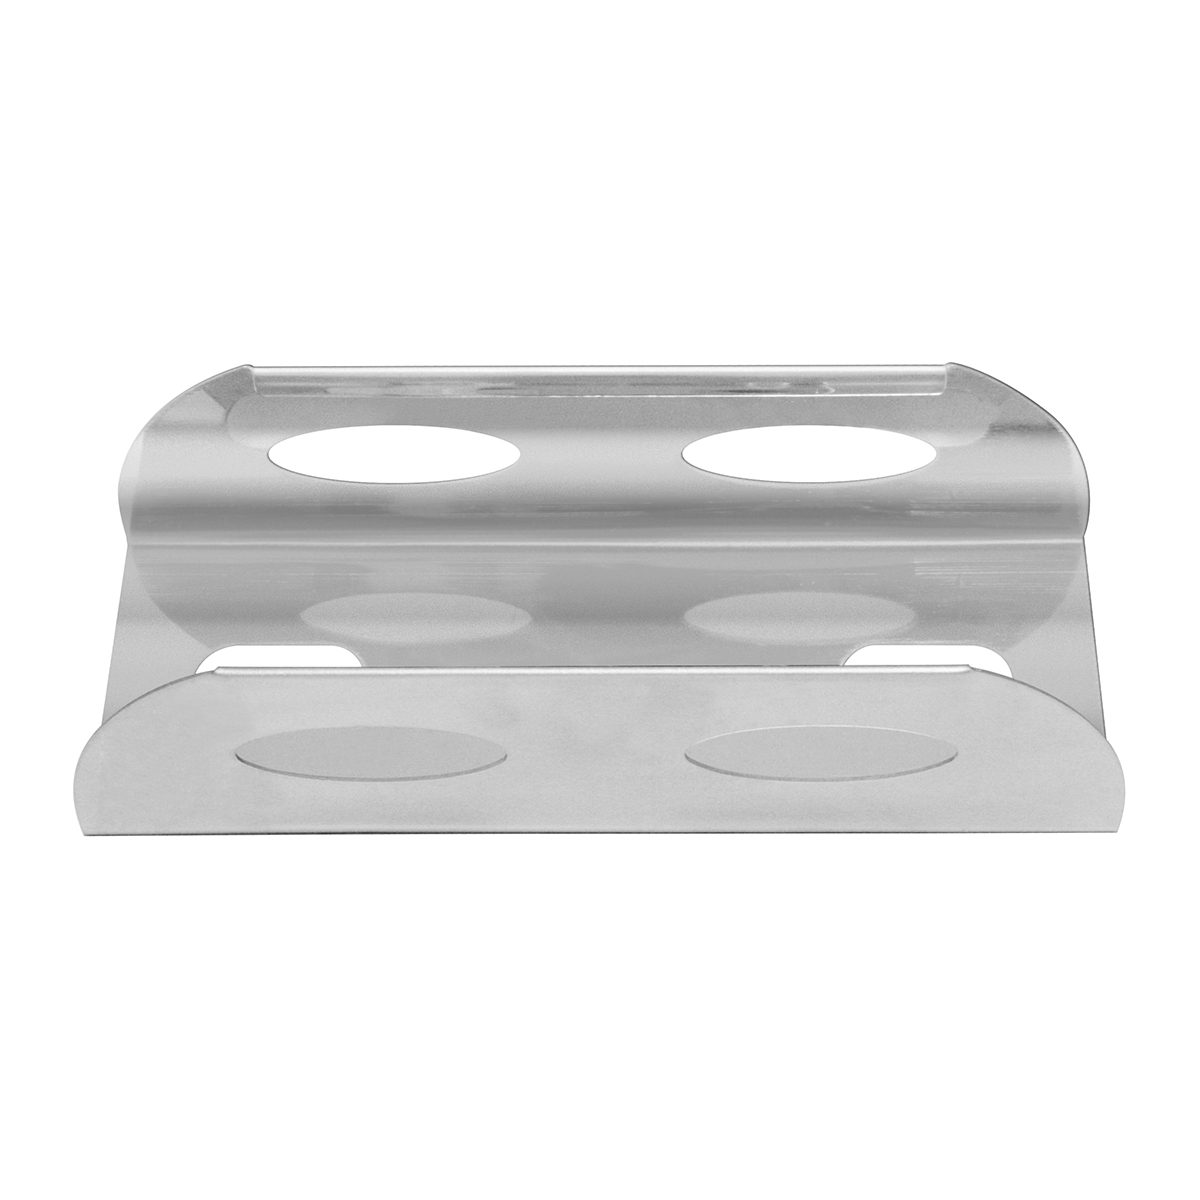 80014 Stainless Steel Lens Guard for Oblong 2 Bulb Marker Lights